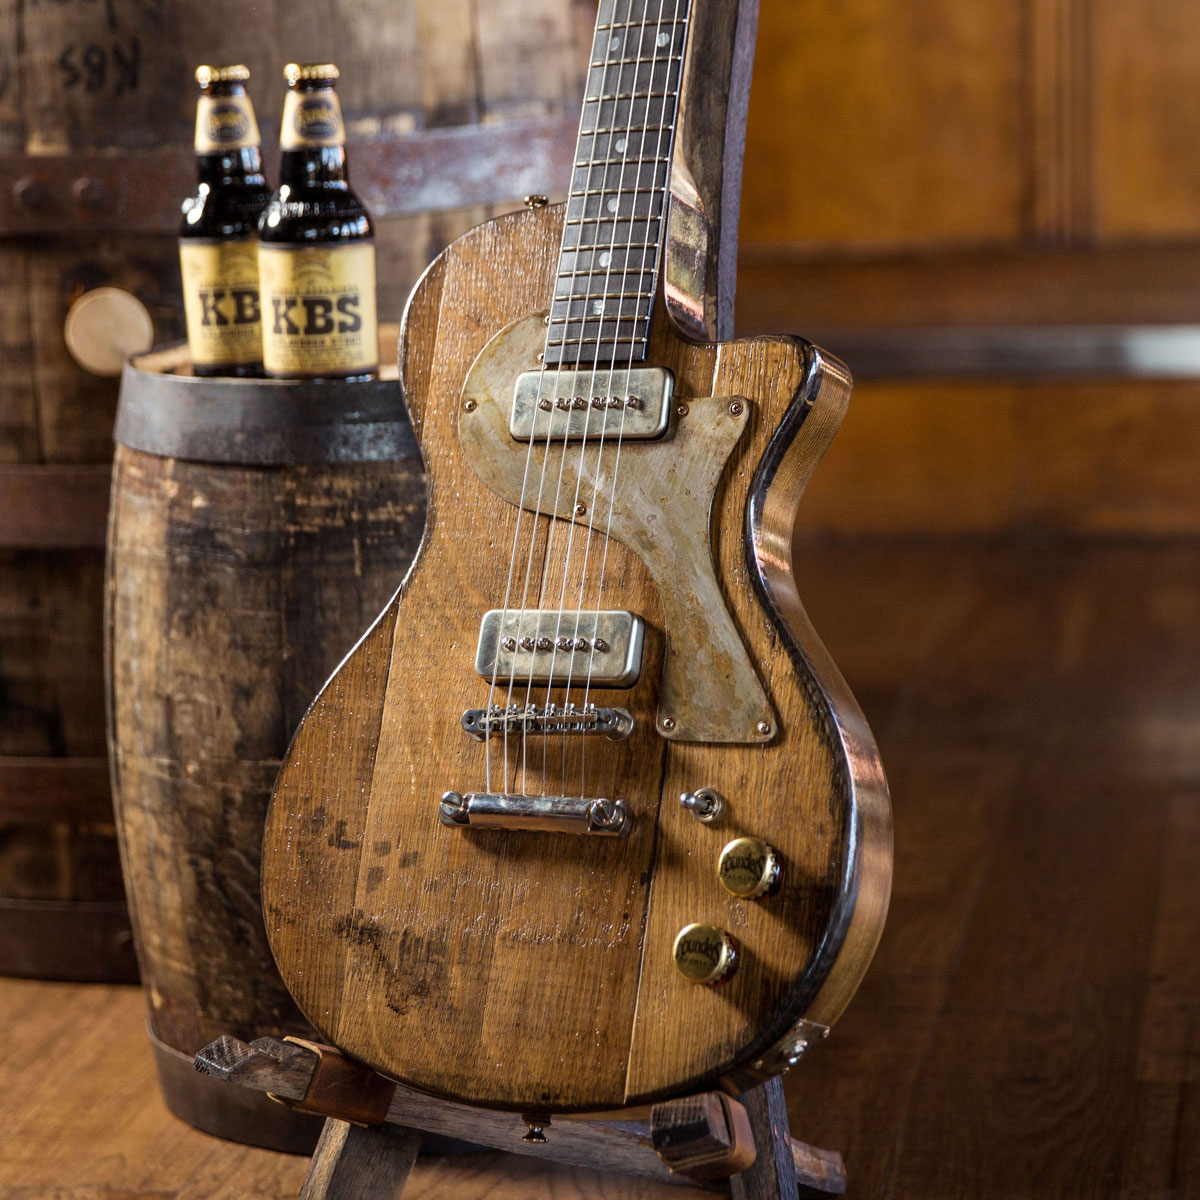 KBS barrel stave guitar with two bottle of KBS stout on barrel next to it